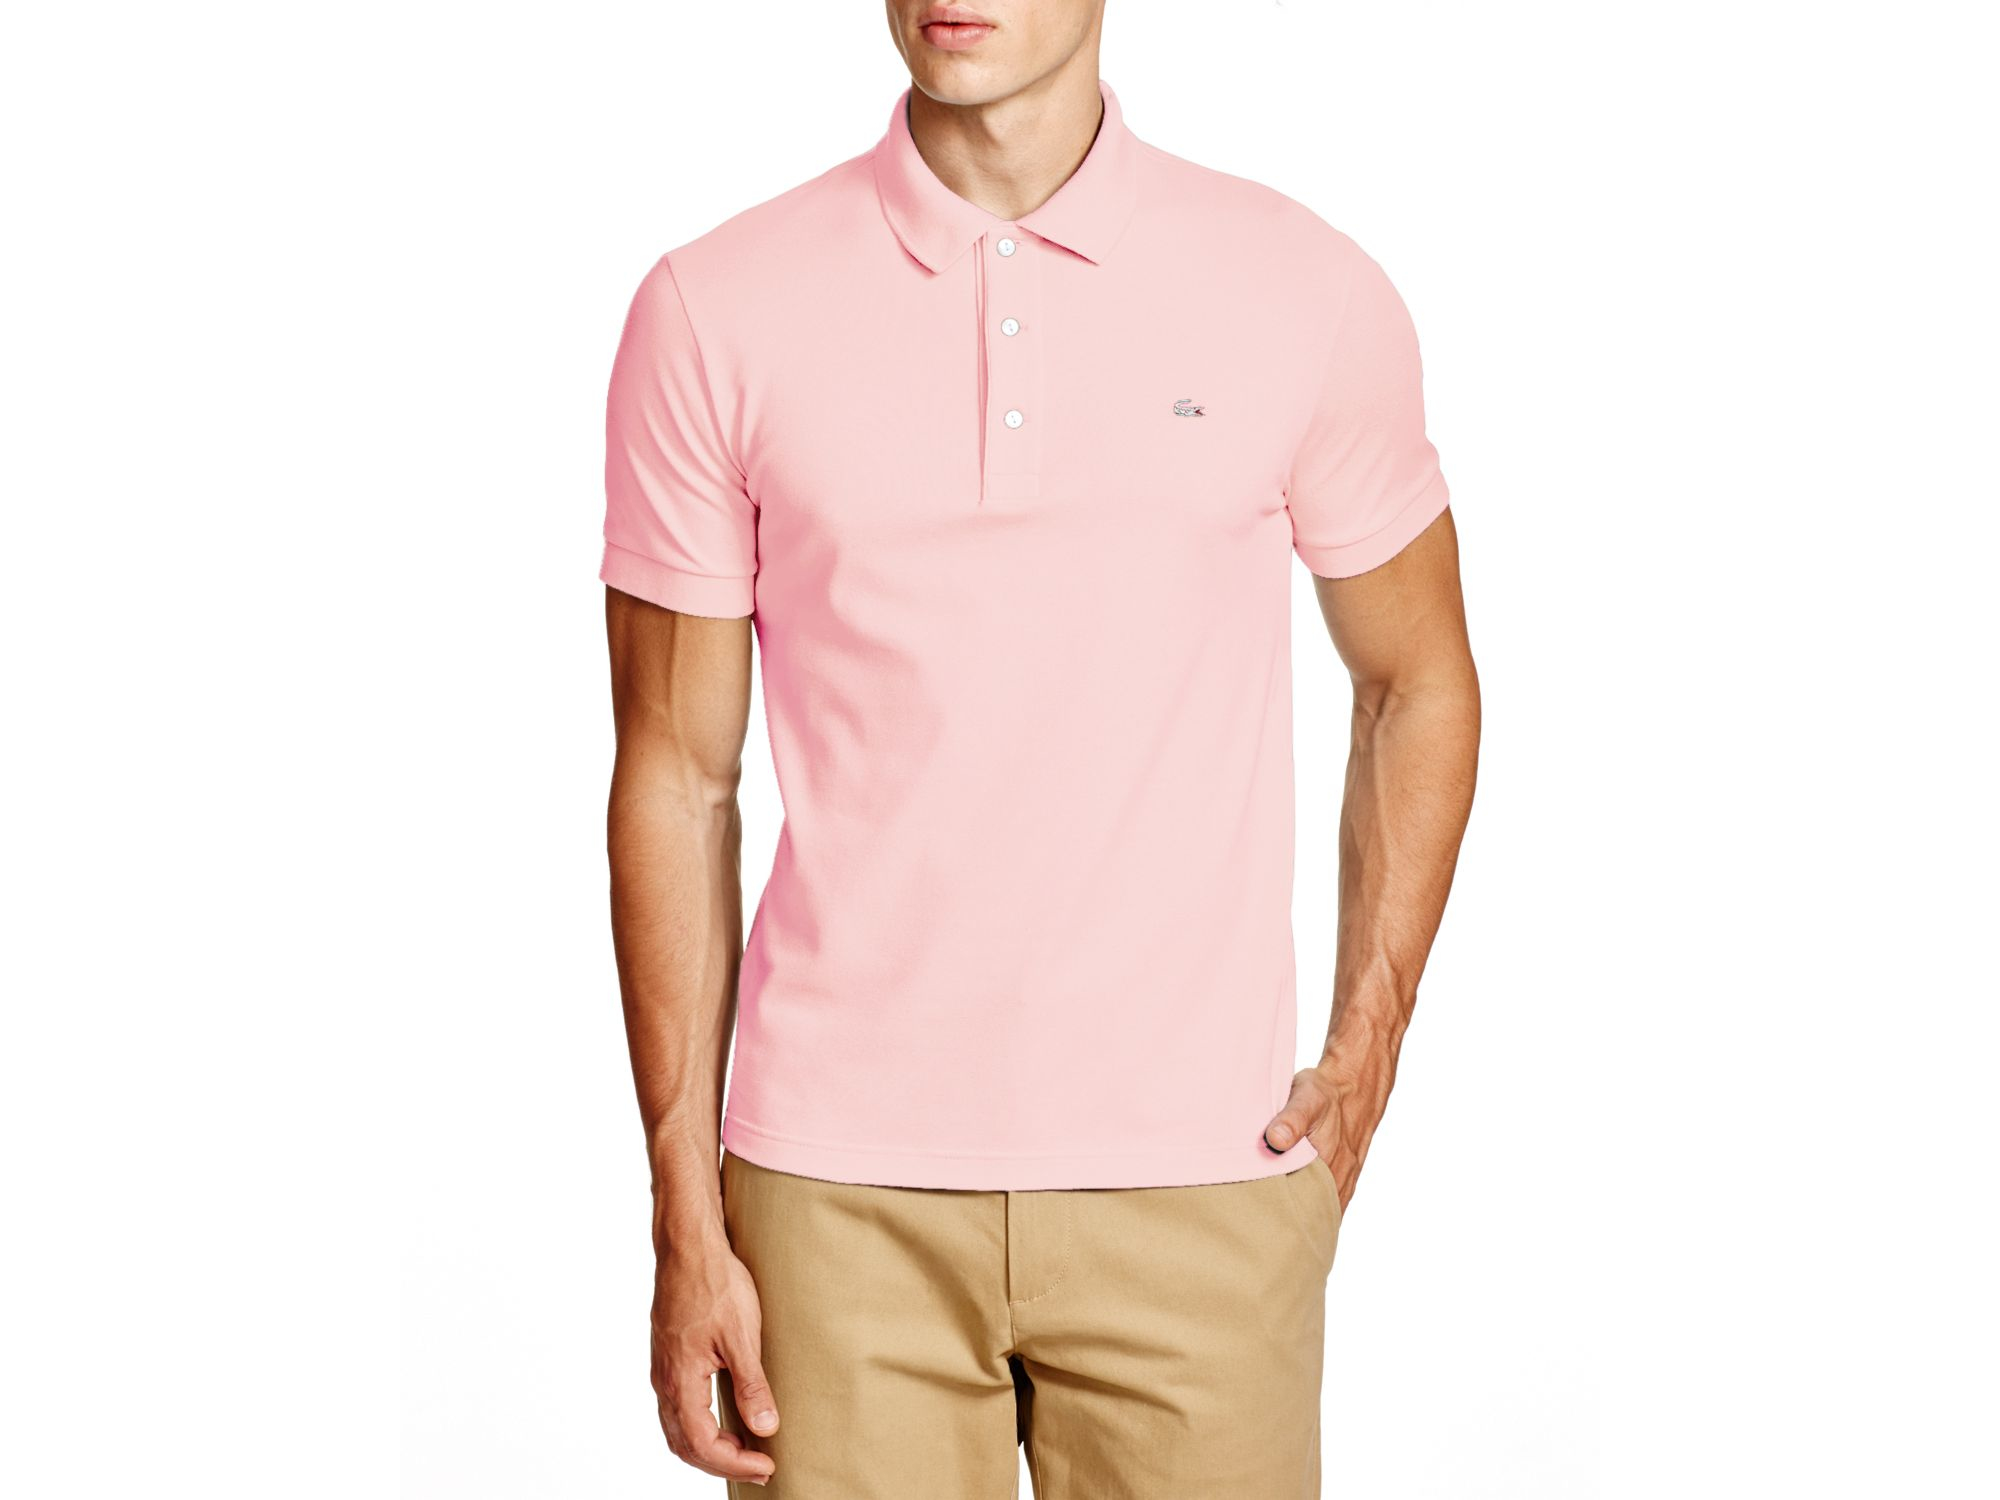 Lyst - Lacoste Stretch Slim Fit Polo in Pink for Men 8ad02cabb8